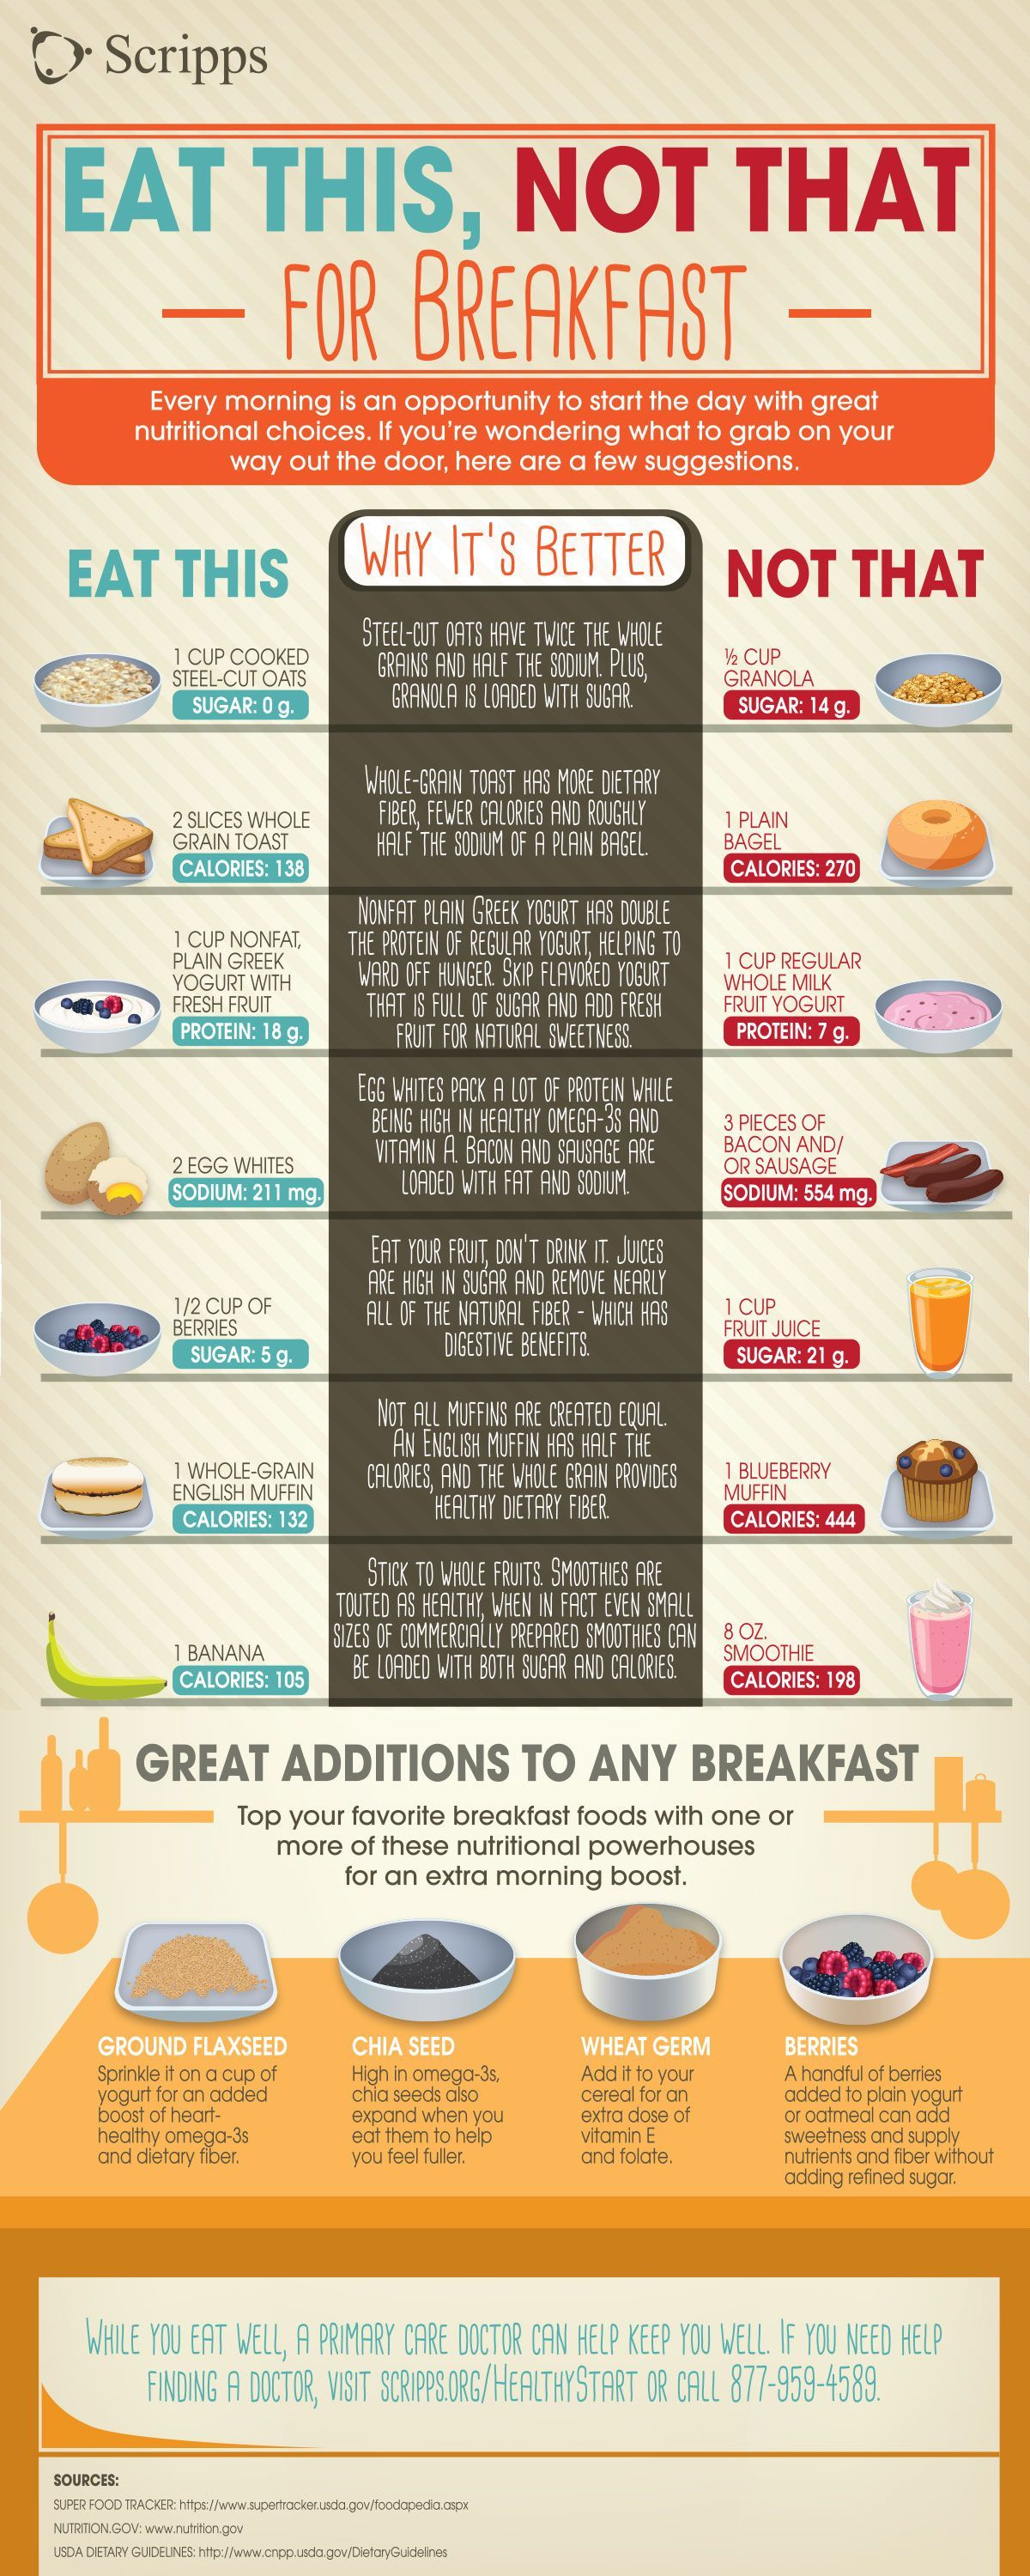 What Is The Healthy Breakfast